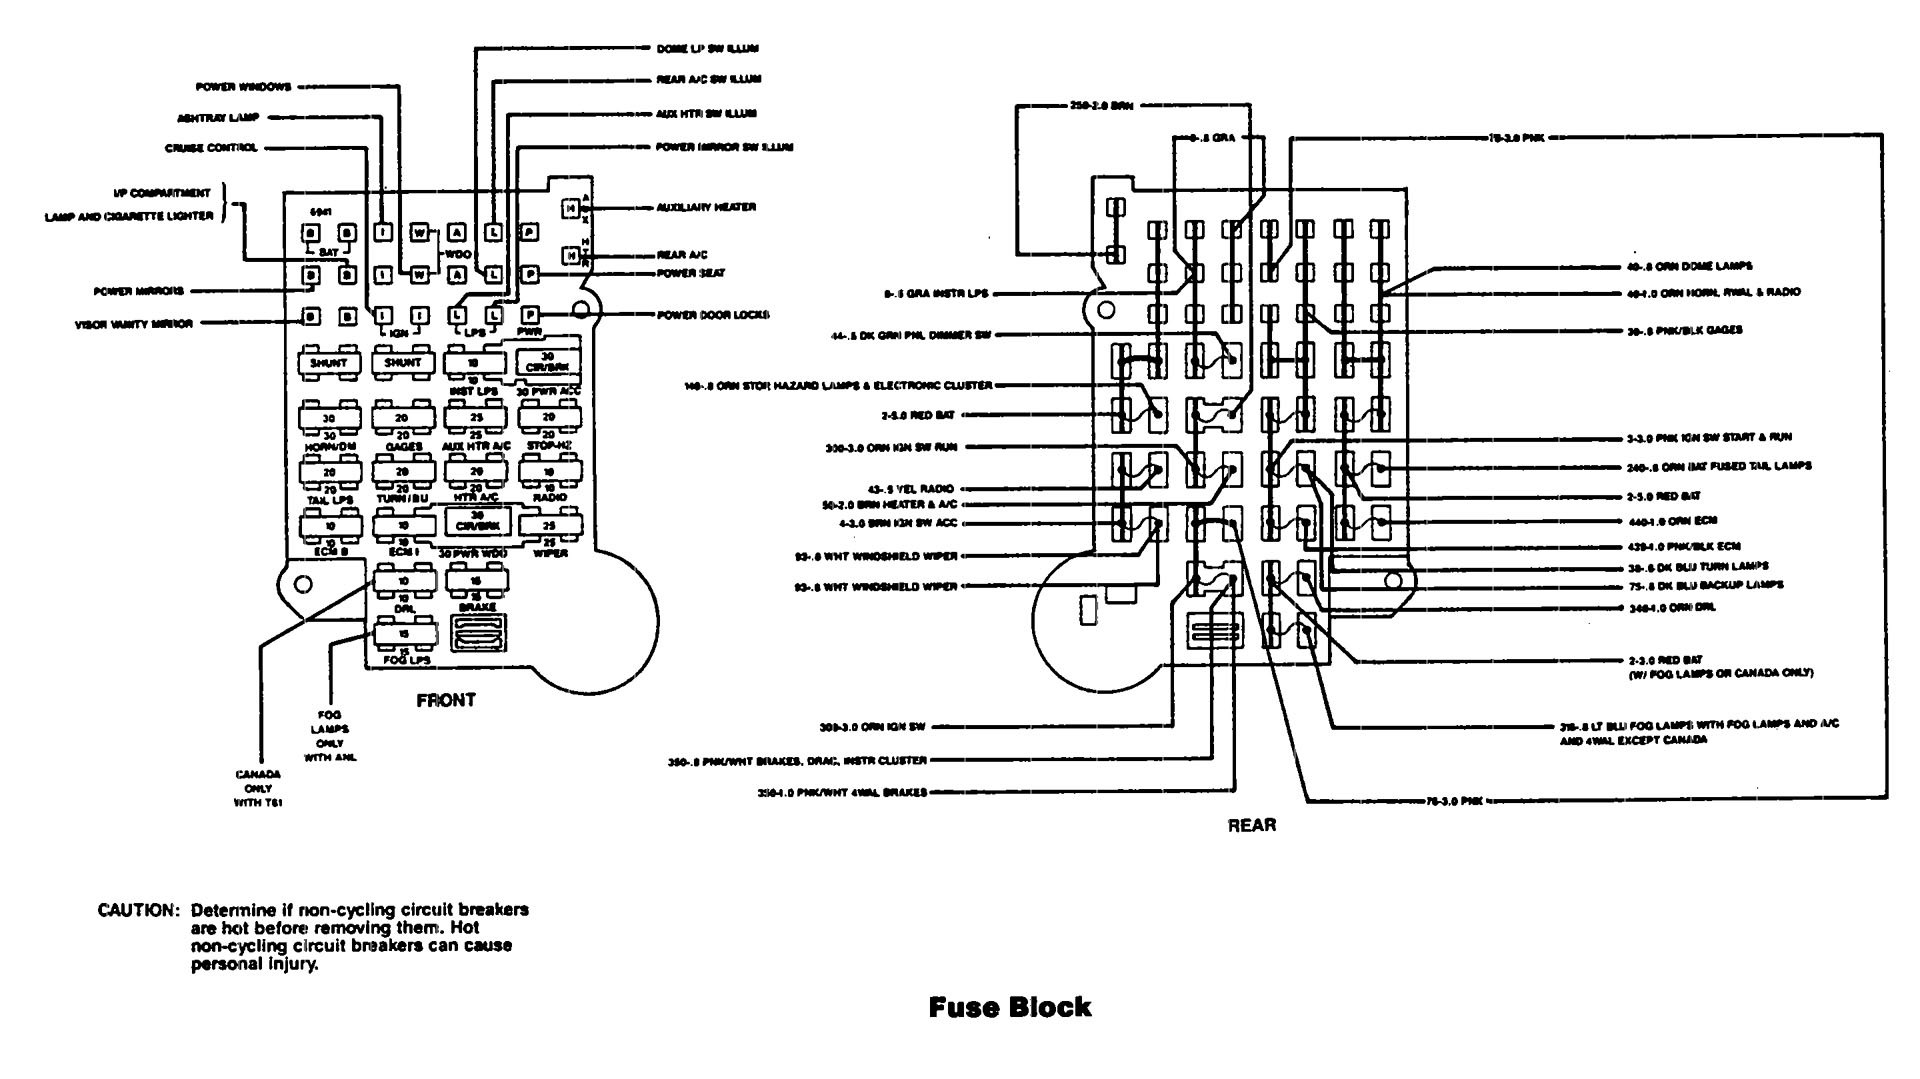 91 240sx fuse box wiring diagram chevrolet astro  1991  wiring diagrams fuse box carknowledge  1991  wiring diagrams fuse box